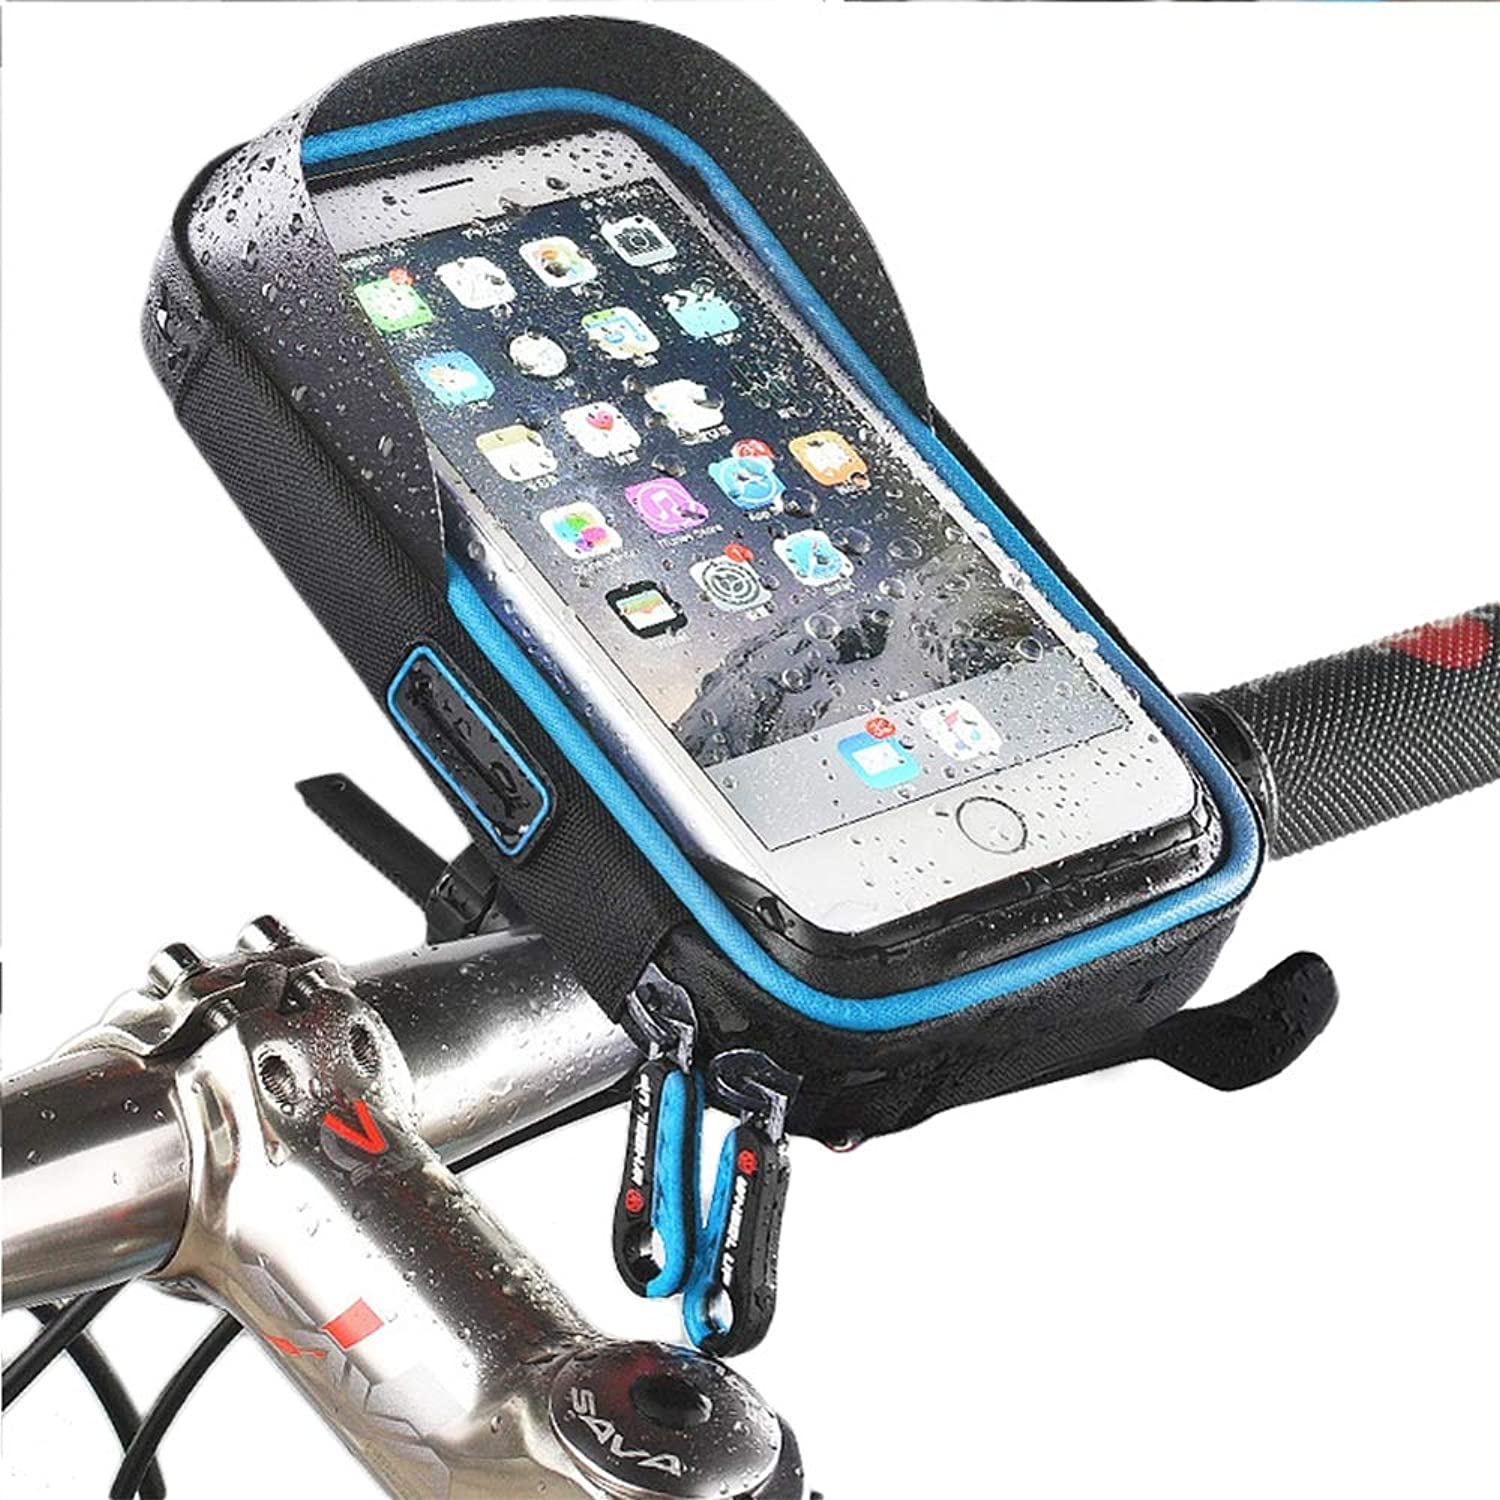 Bike Bag Pouch, Waterproof Bicycle Frame Cycling Pannier with Headphone Cable Outlet, Phone Holder Touch Screen for Phones Below 6 inch